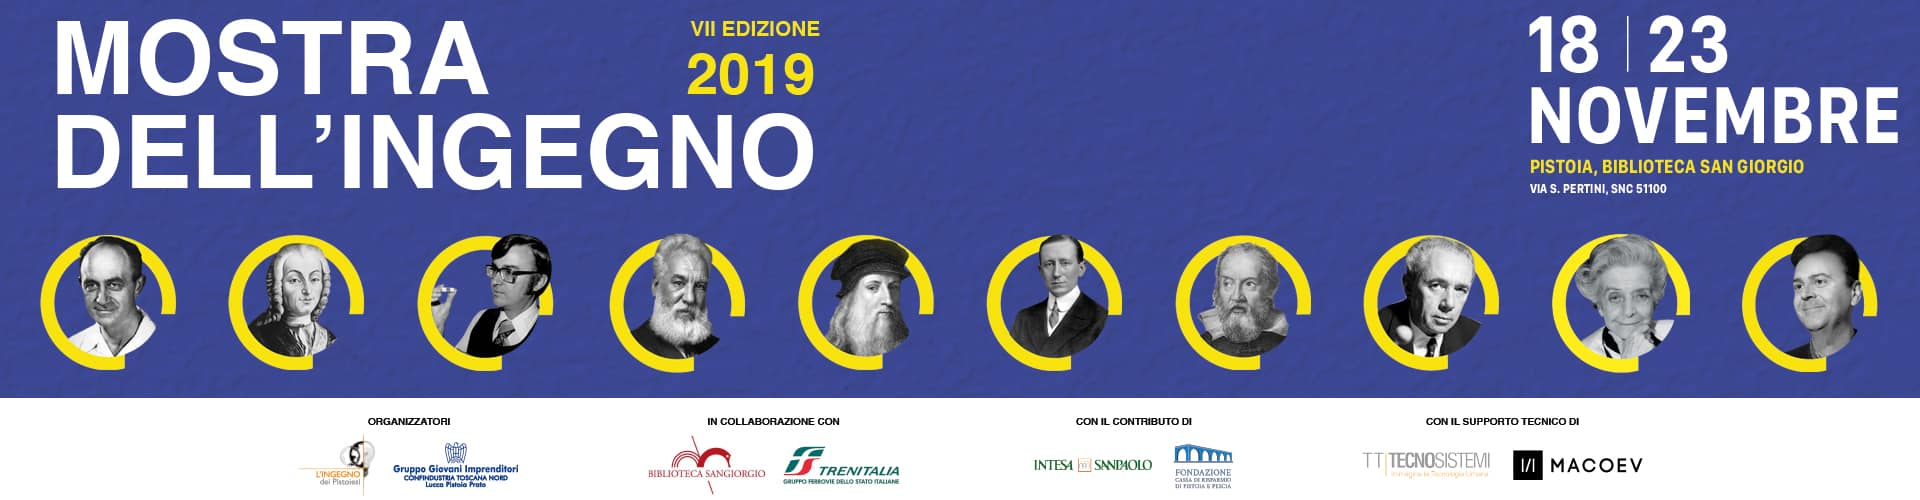 Cover Mostra dell'Ingegno 2019